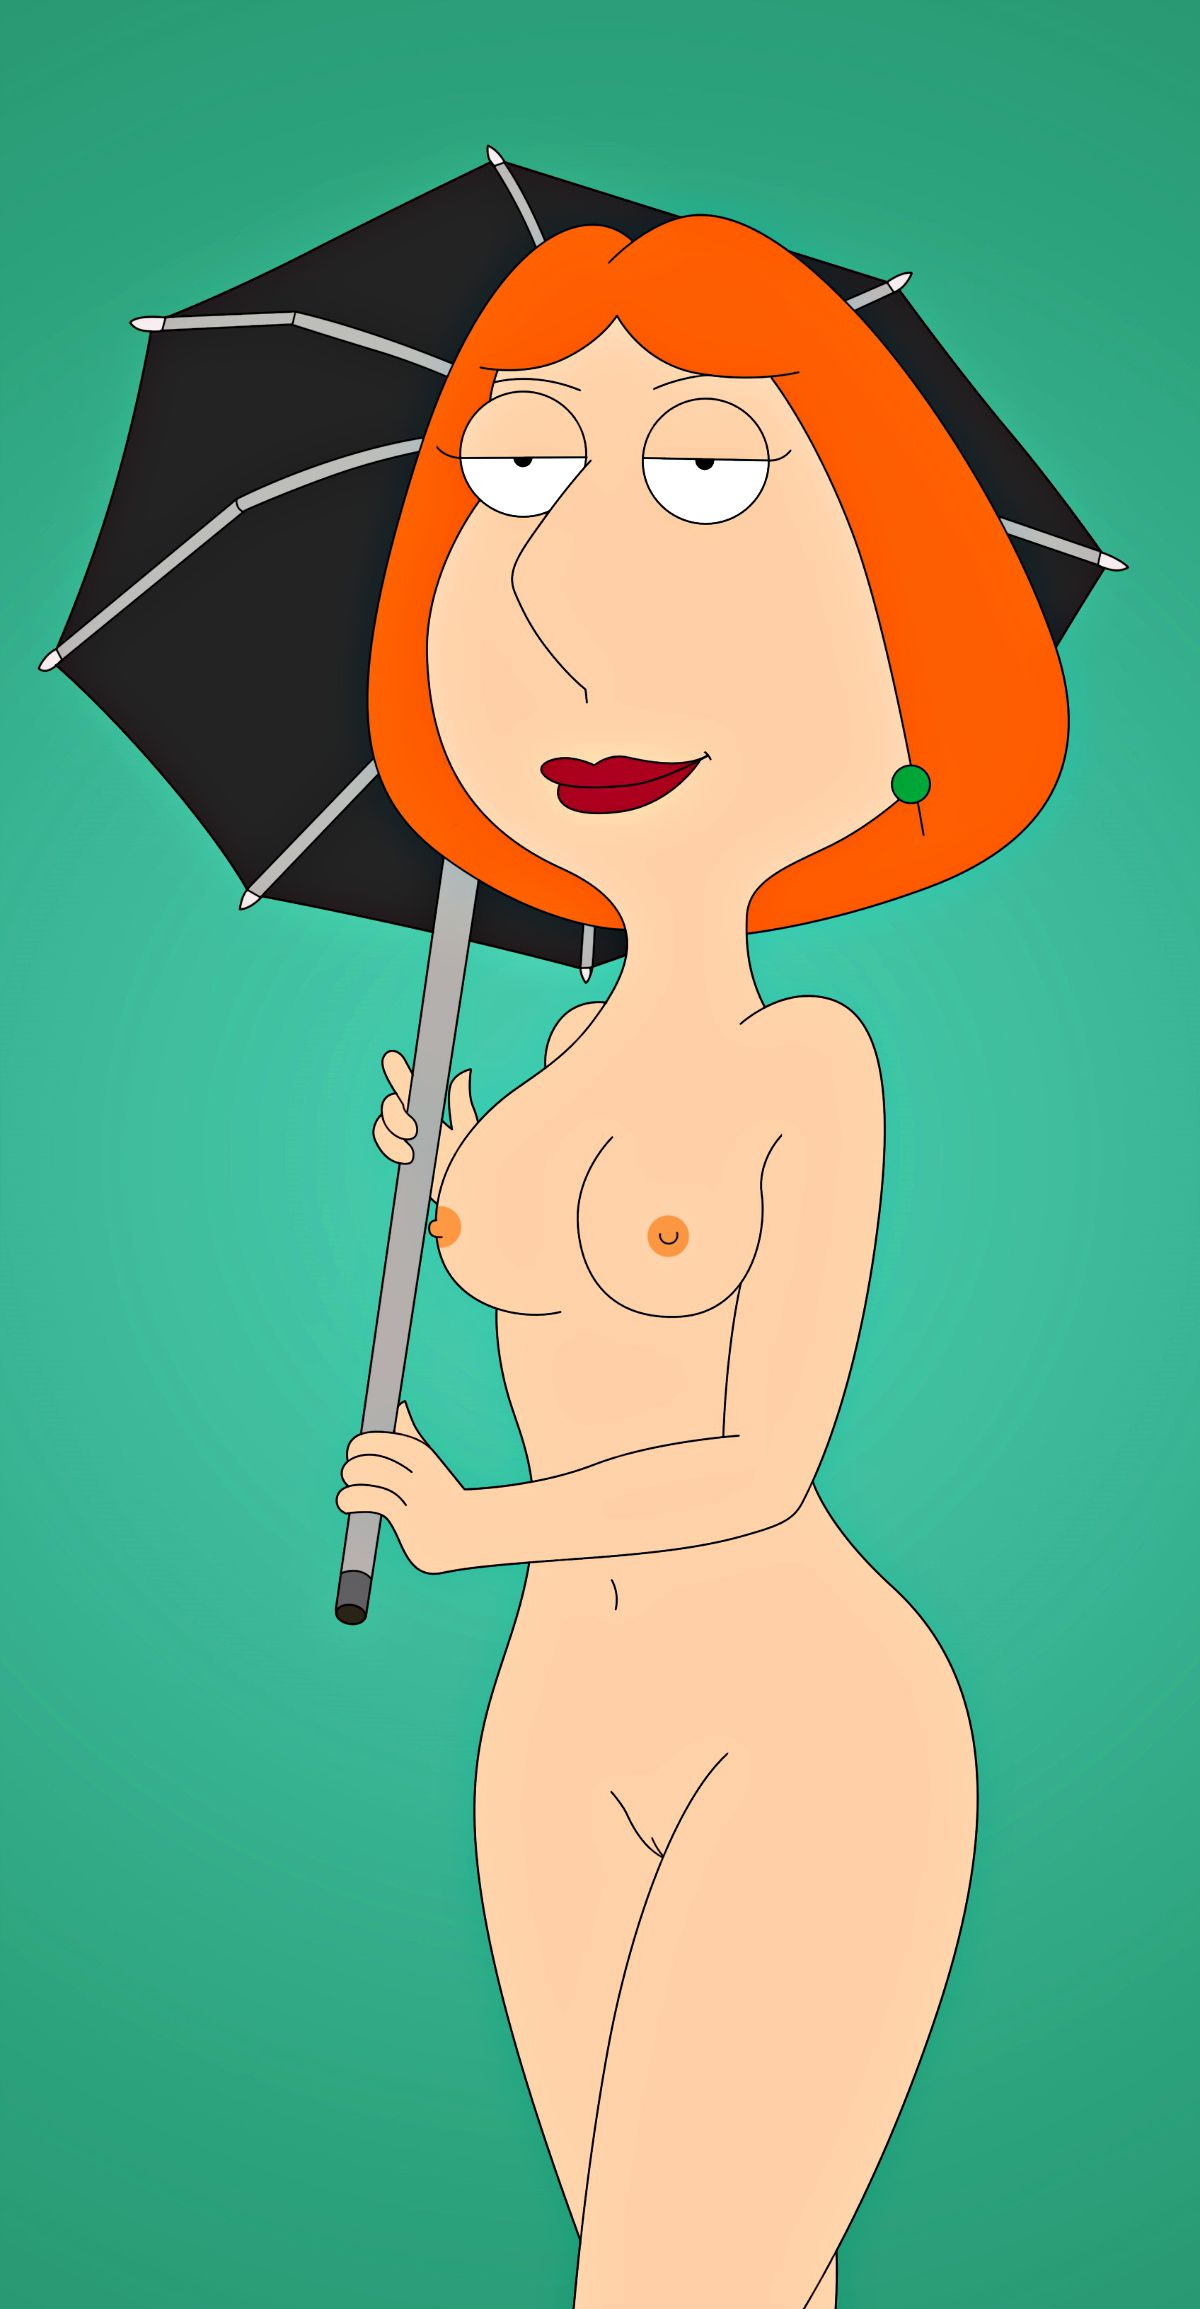 Cabana lois griffin with her tits out